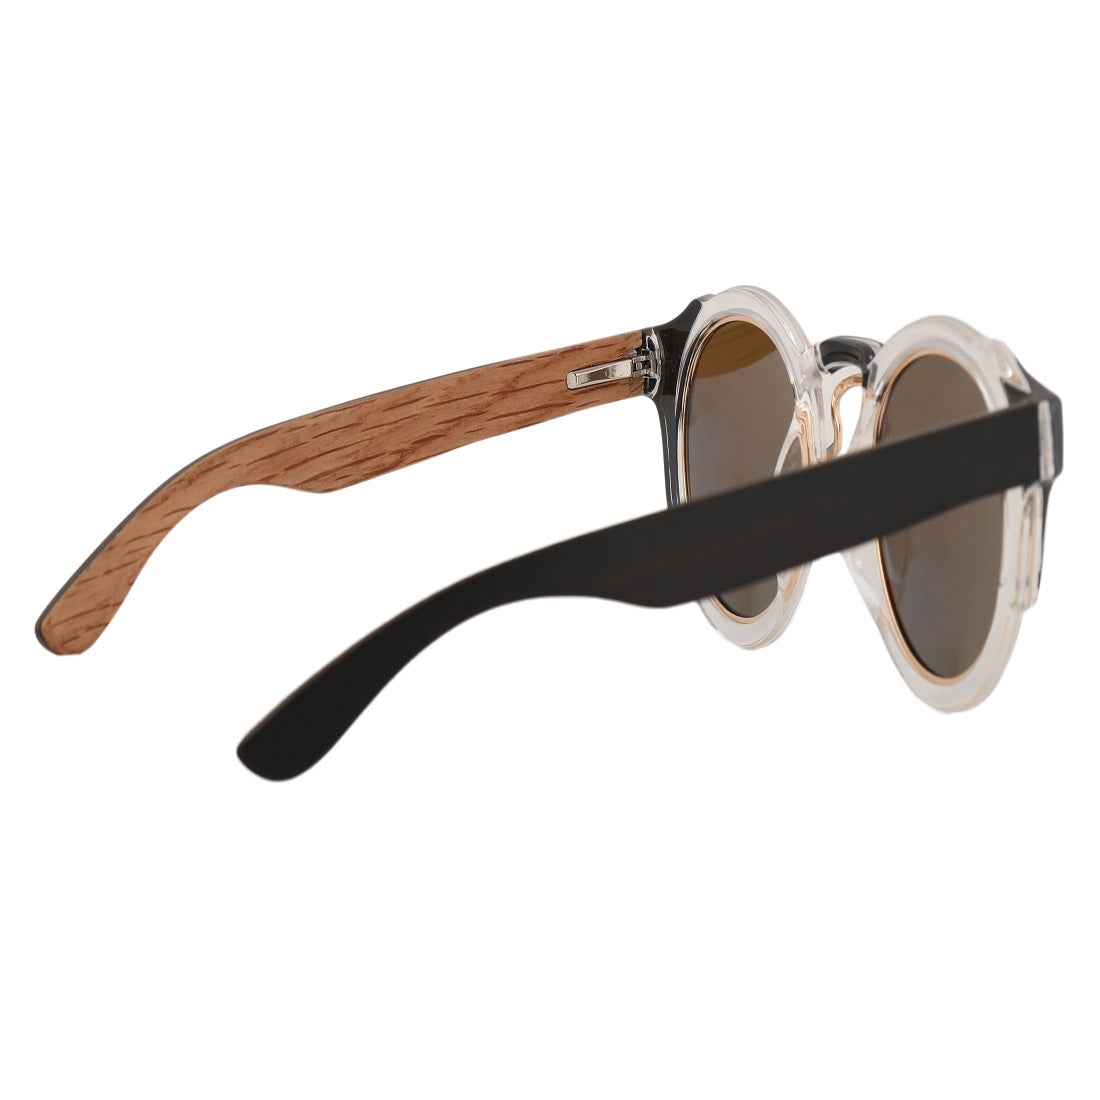 OPTA SG-010 Round Polarized Oak Wood Sunglasses